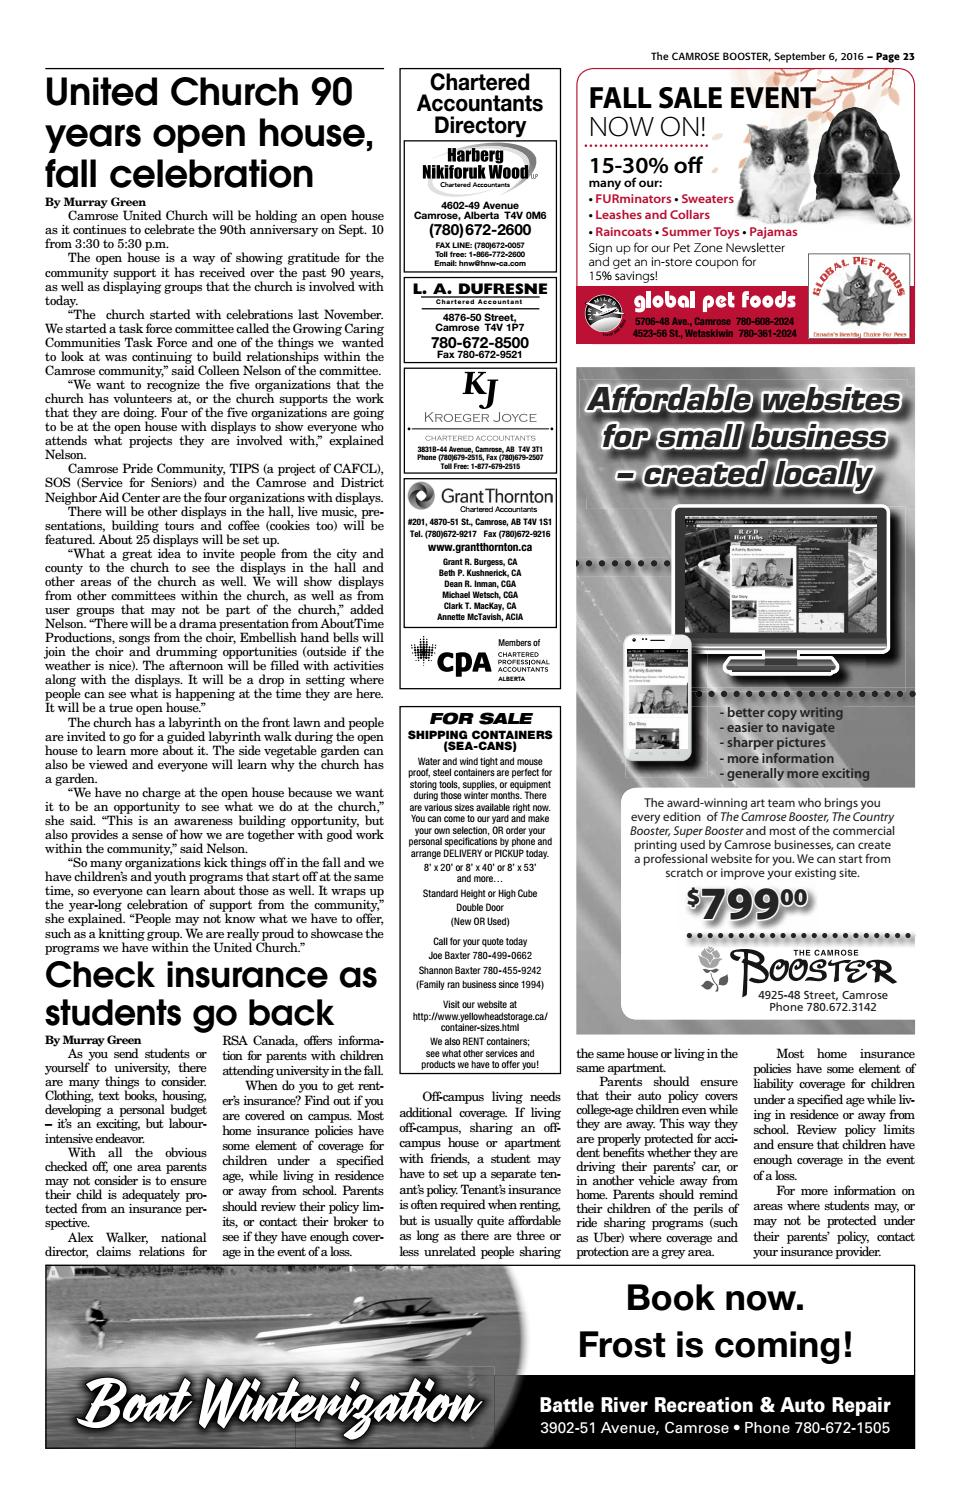 September 6, 2016 Camrose Booster by The Camrose Booster - issuu